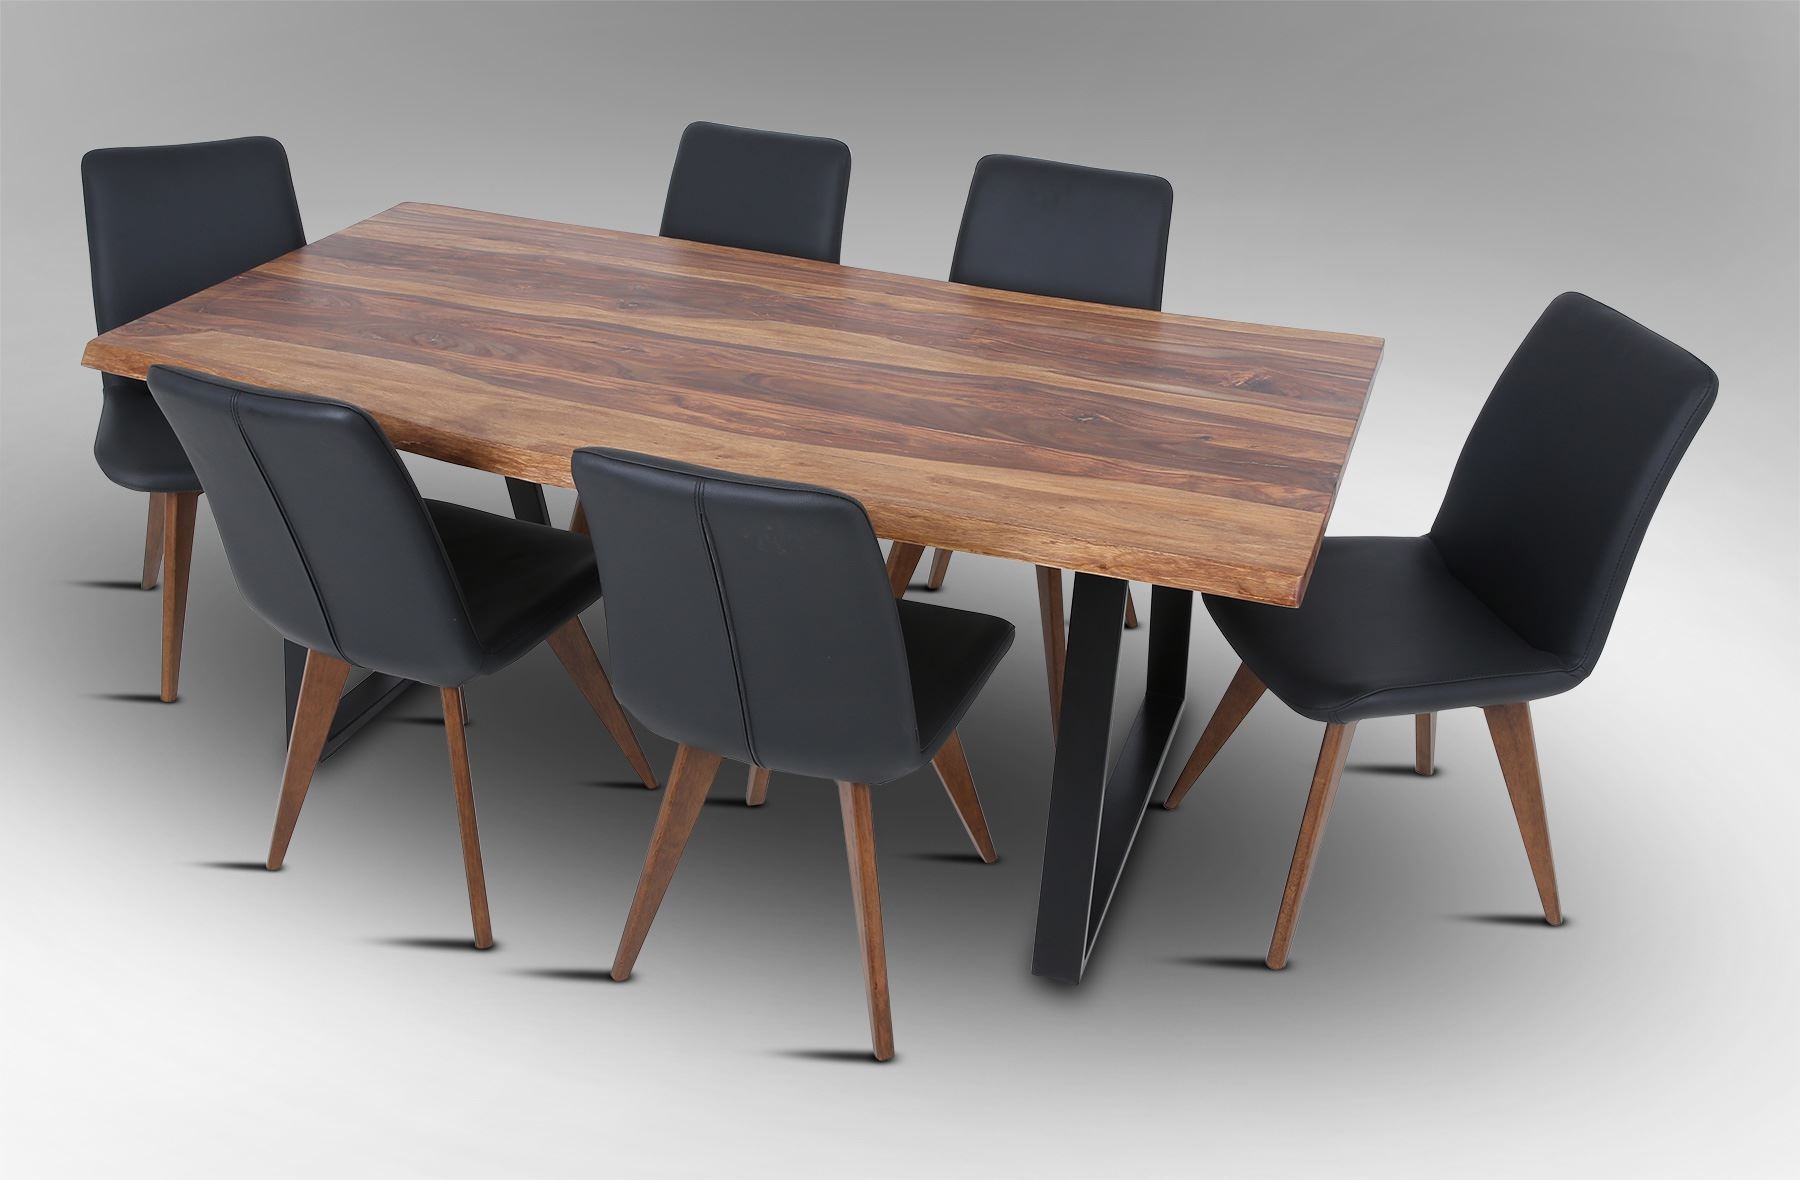 100 Dining Table With 6 Leather Dining Room Square  : 0001002rio 2000 dining table with 6 hilton leather dining chairs black from 45.77.72.155 size 1800 x 1180 jpeg 135kB